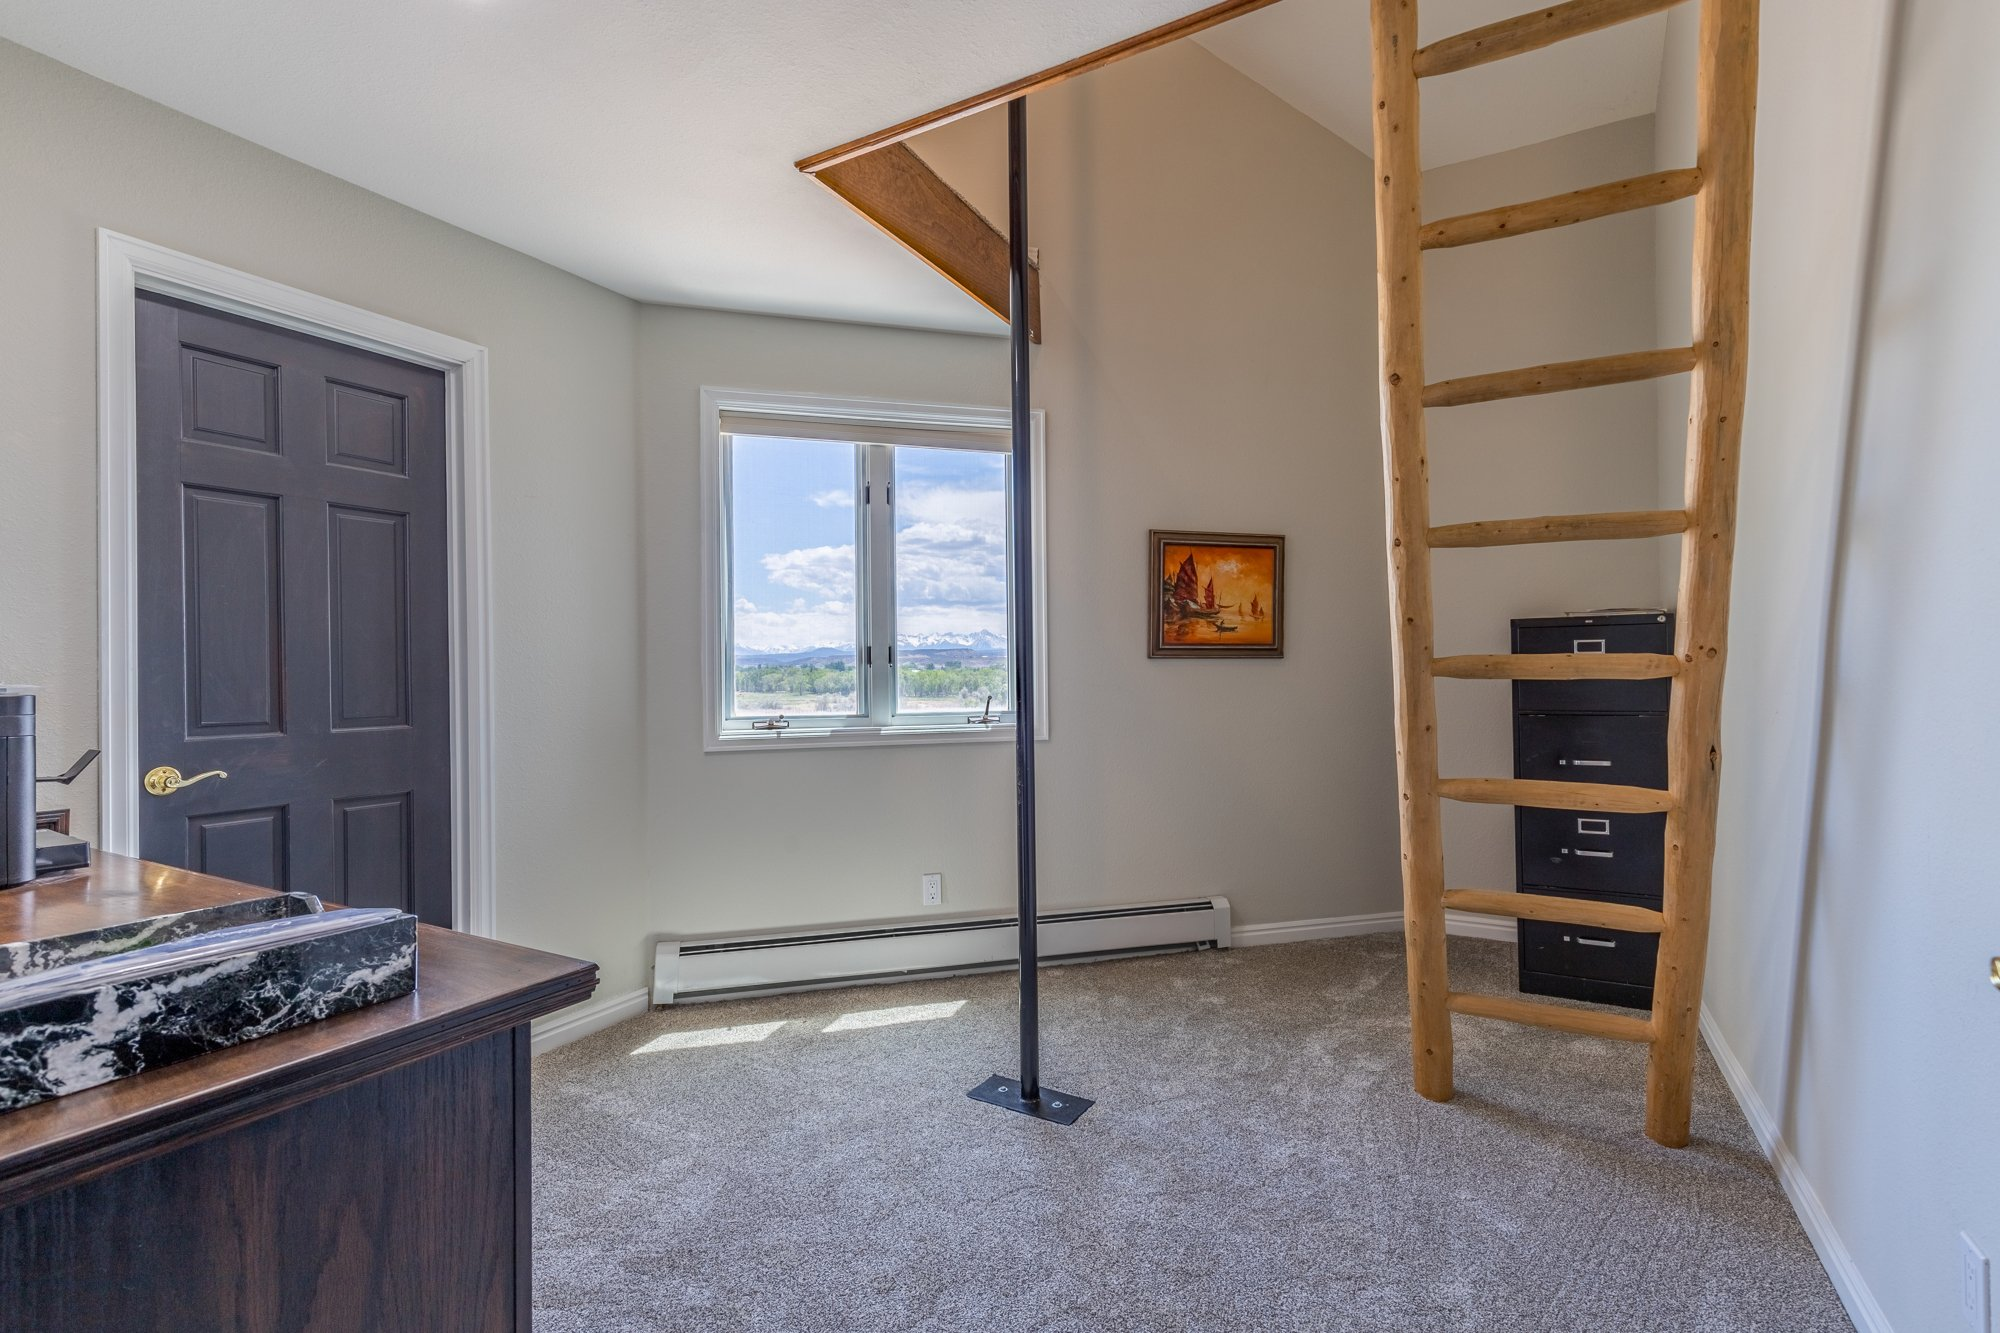 Bedroom with Loft and Ladder - 16955 Wildwood Dr. Montrose, CO 81403 - Atha Team Luxury Real Estate